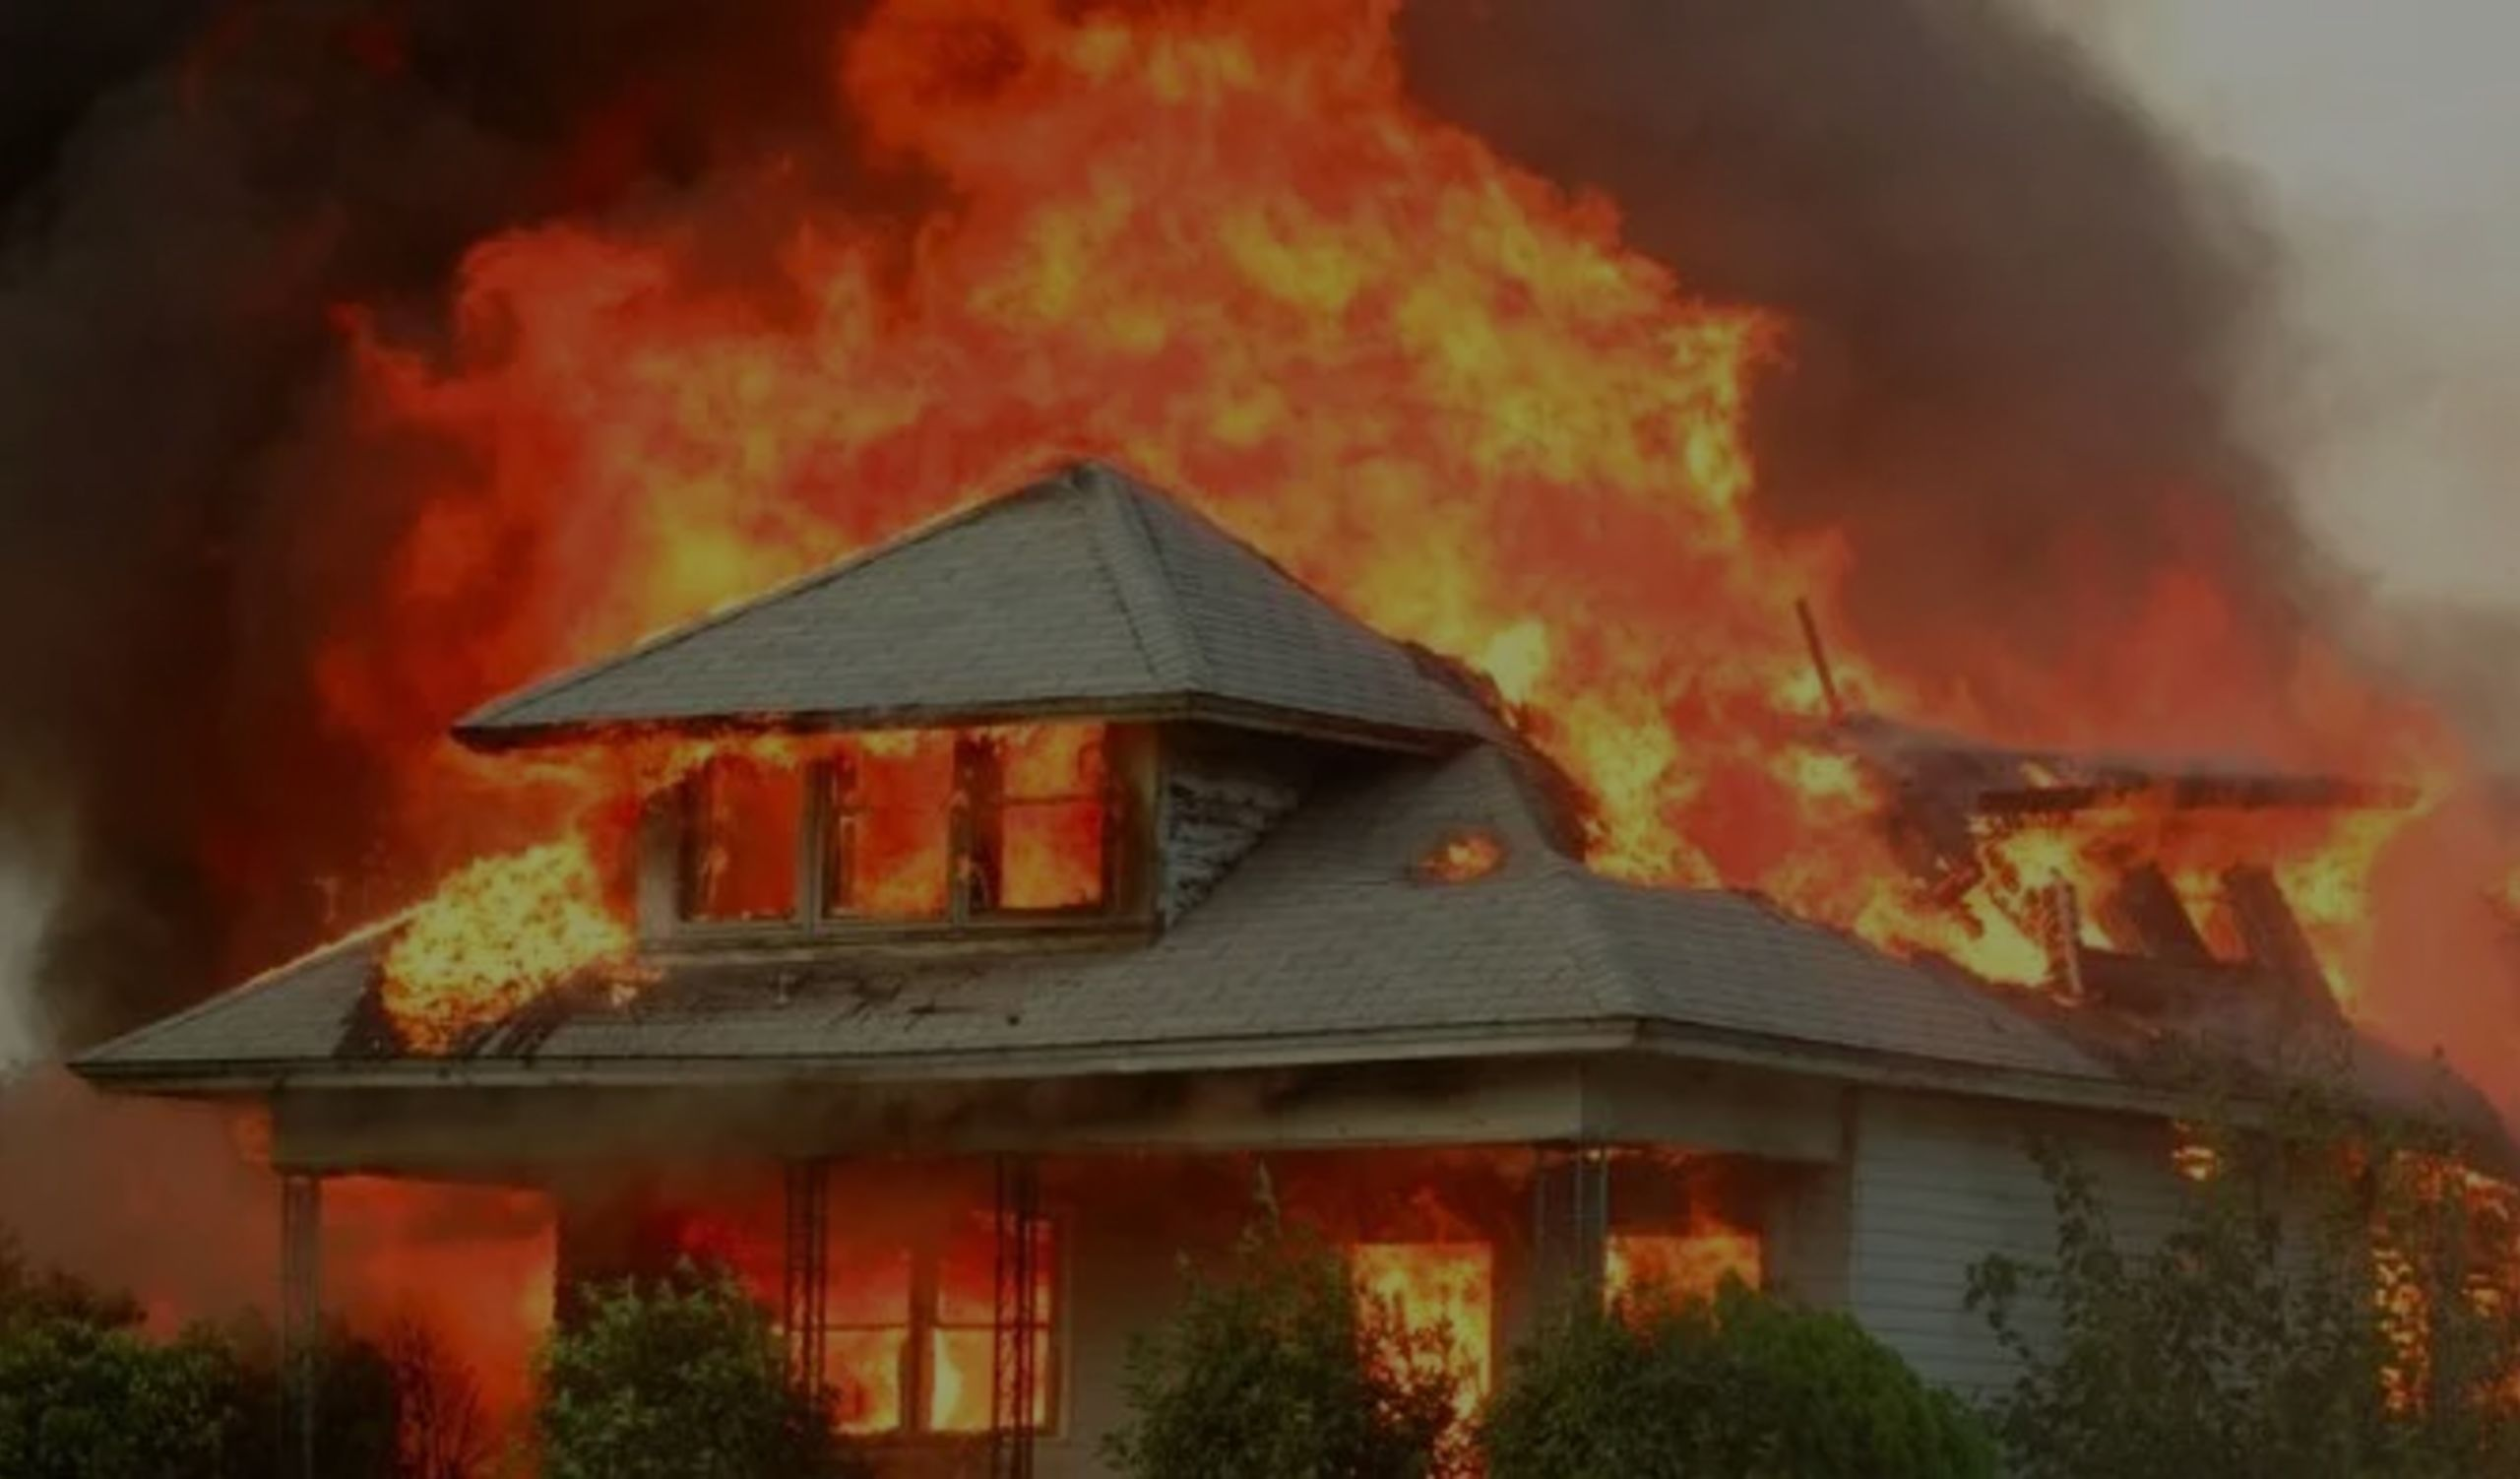 Fire Safety in the Home:  How to Be Prepared